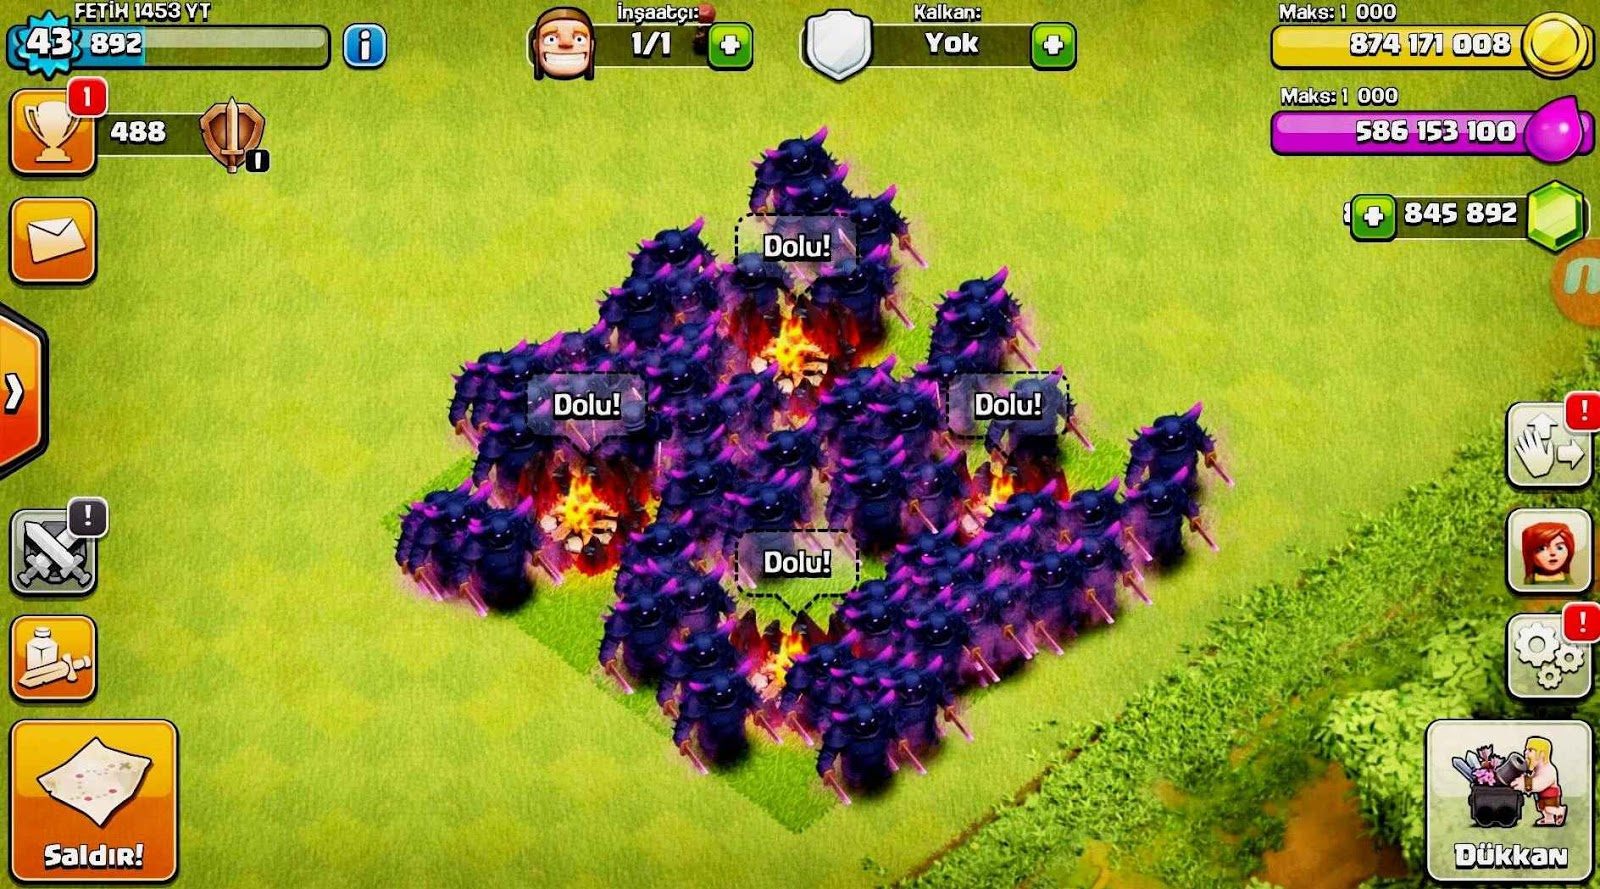 Download Game Mod Coc Terbaru 2018